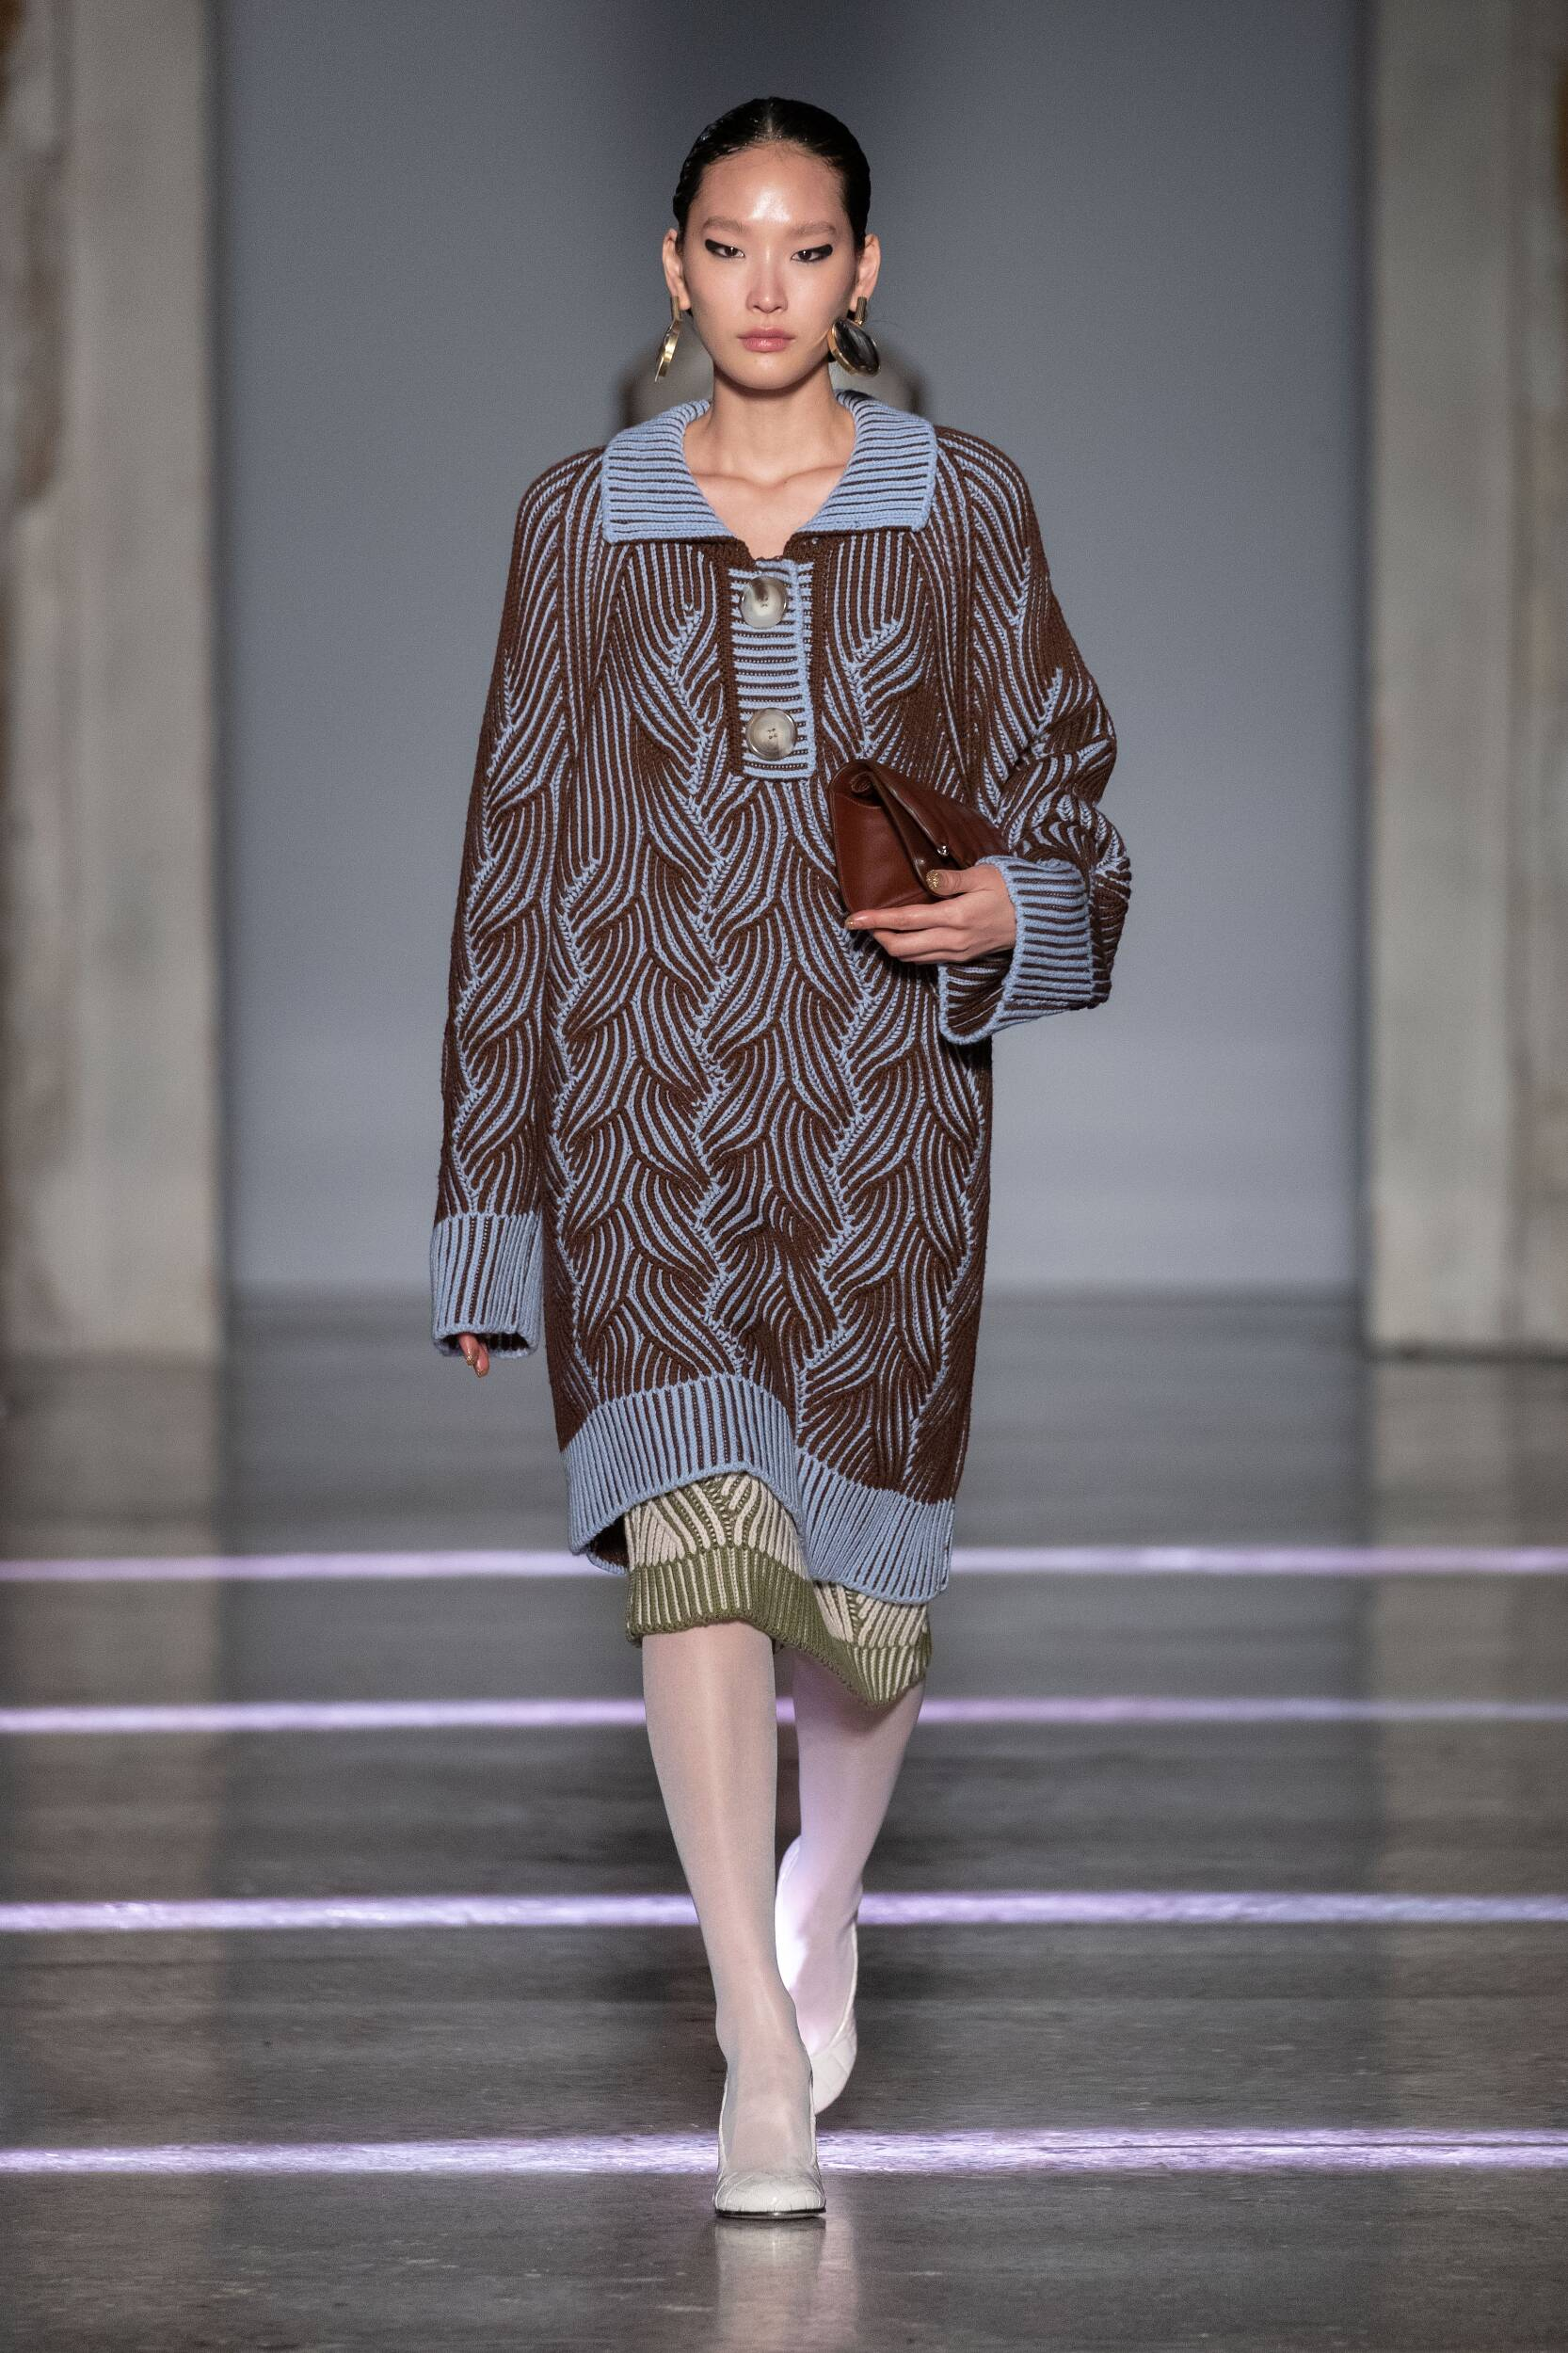 Fall 2020 Womenswear Marco De Vincenzo